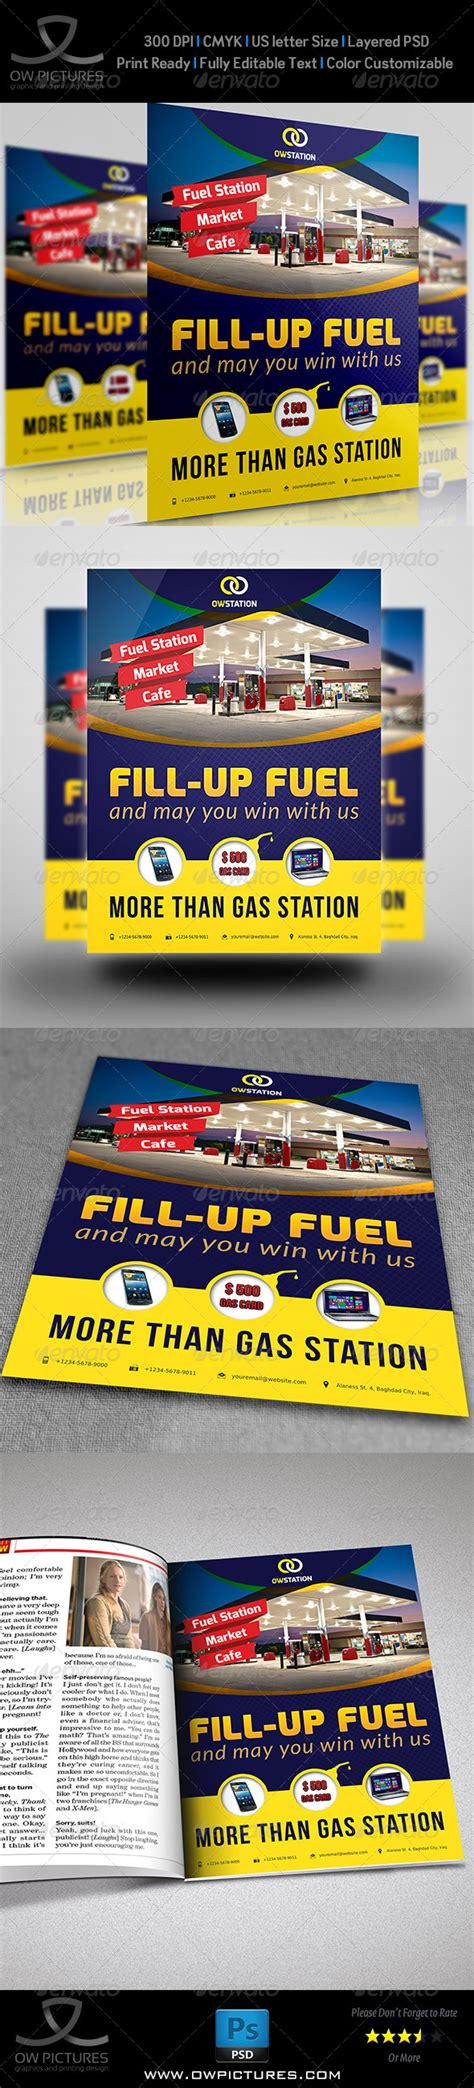 Gas Station Flyer Template Graphicriver Gas Station Website Template